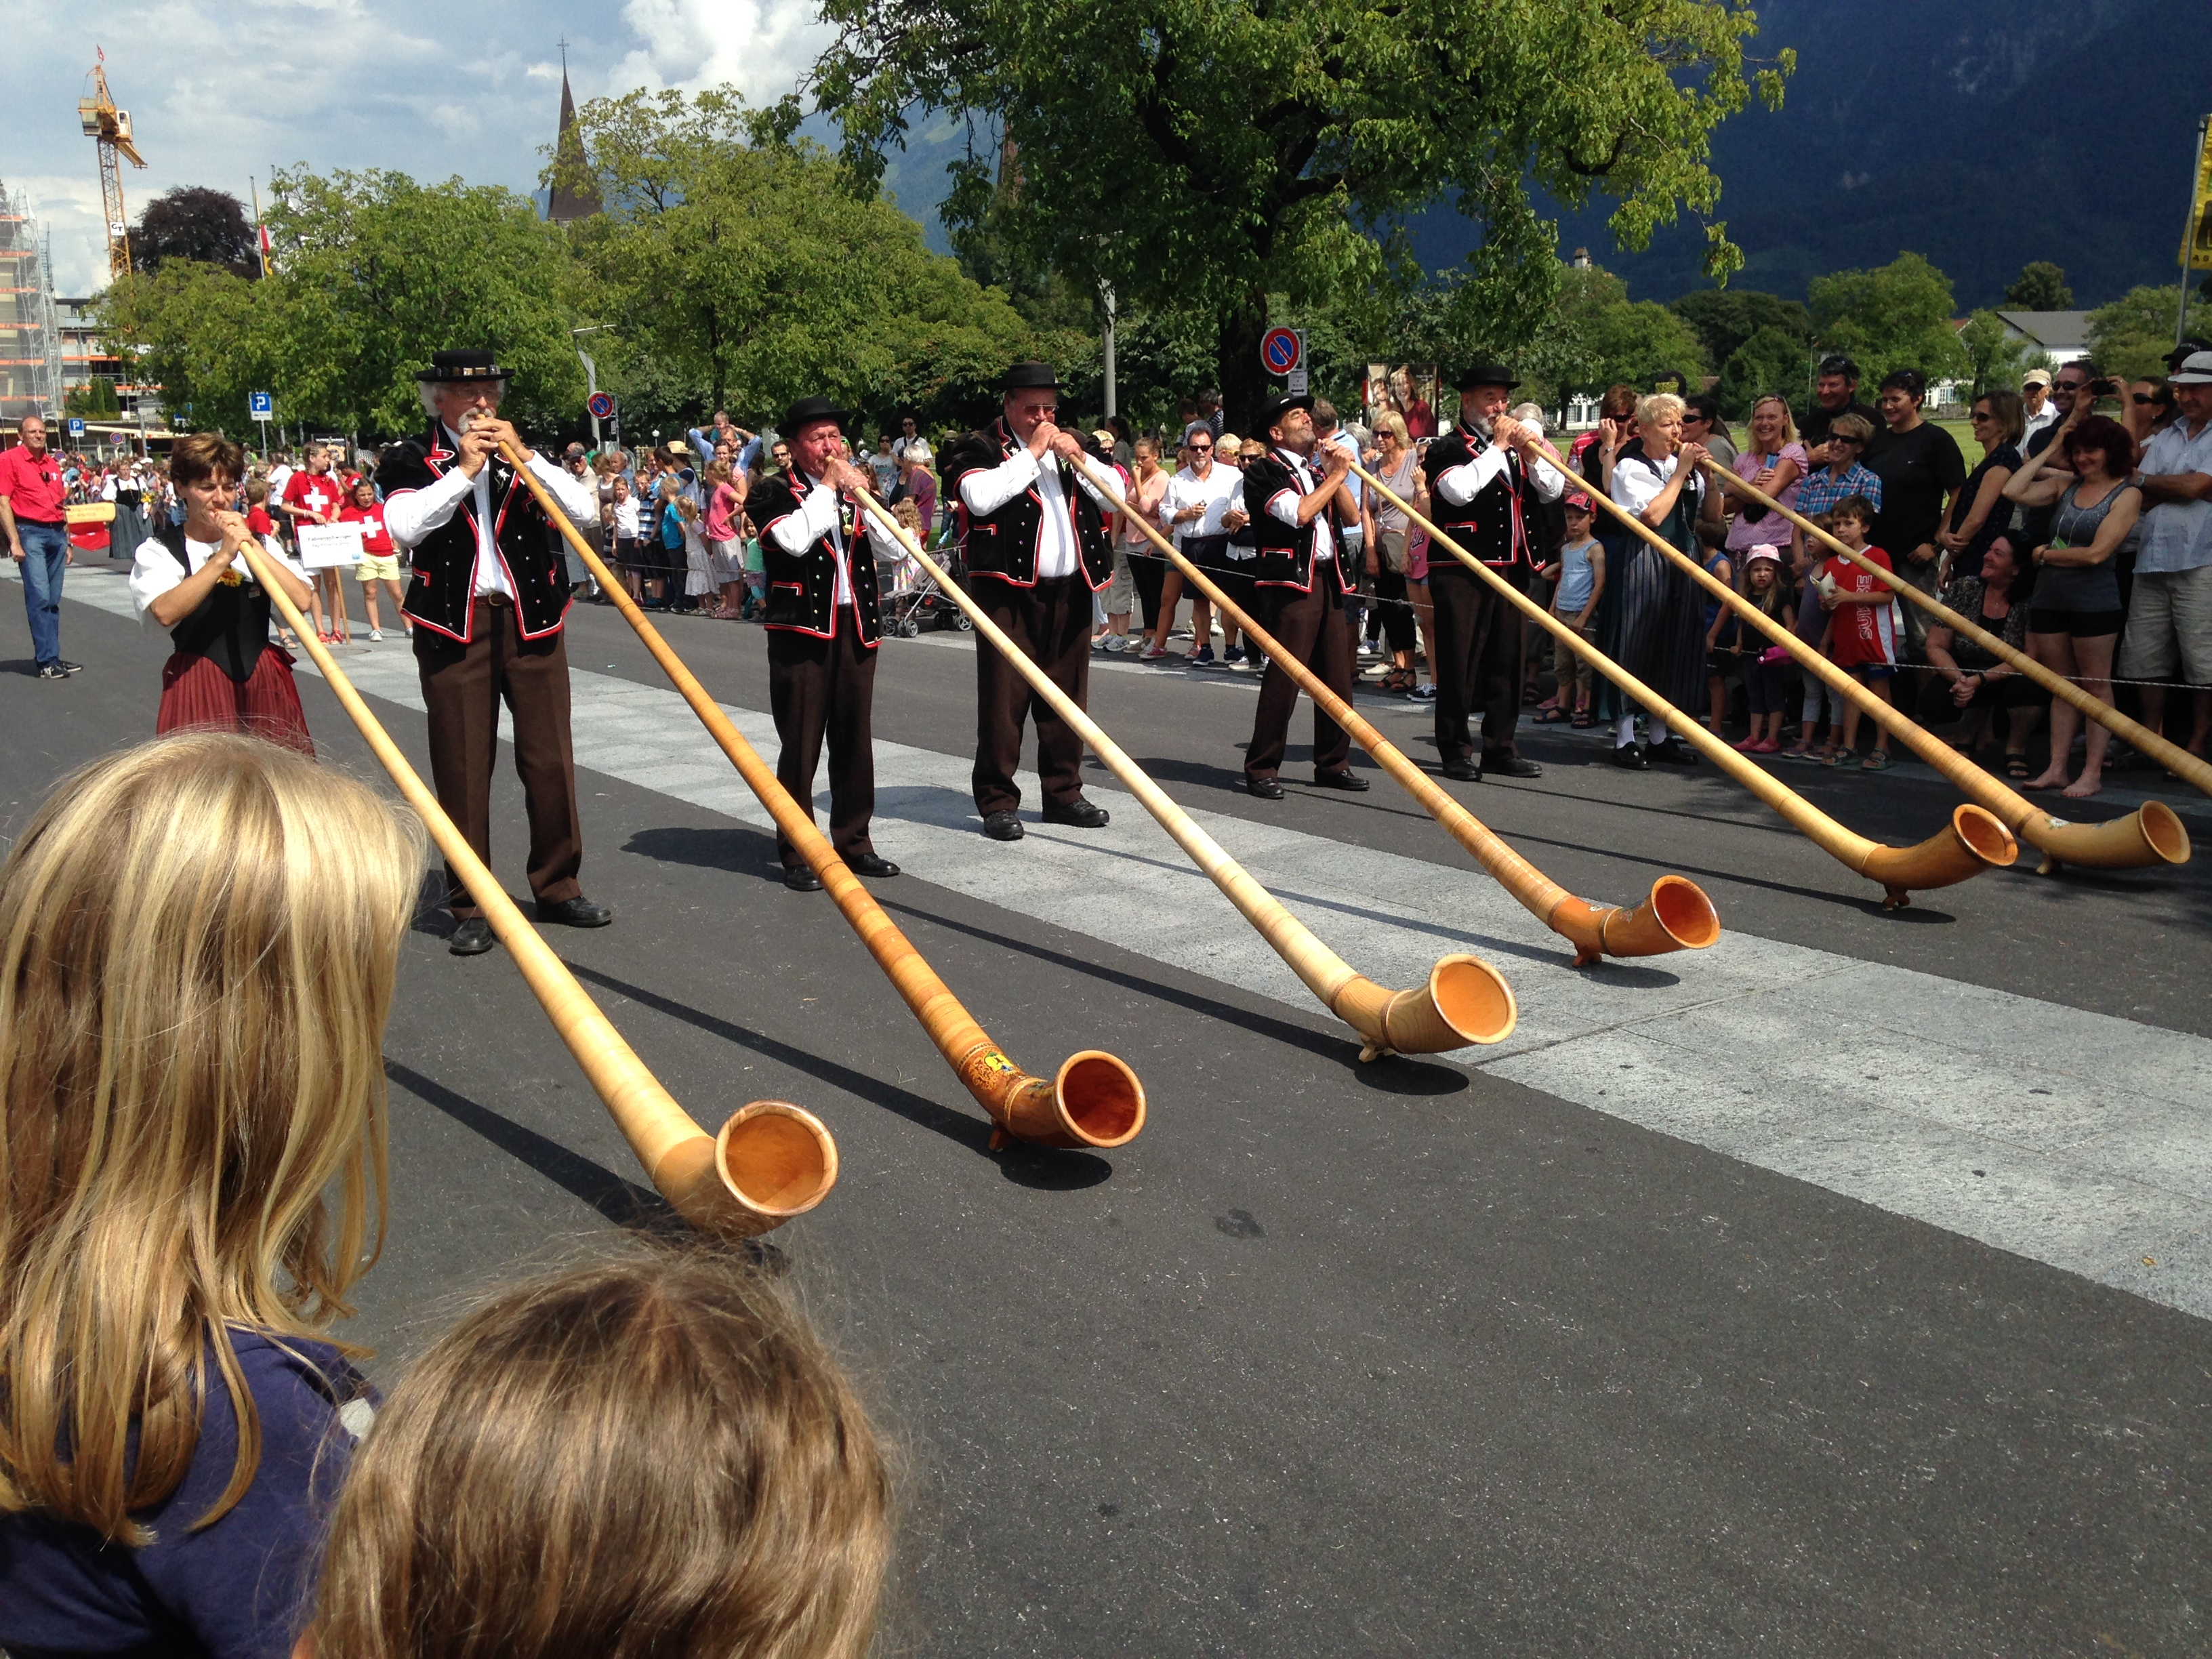 The Alphorn - Beautifully Melancolic